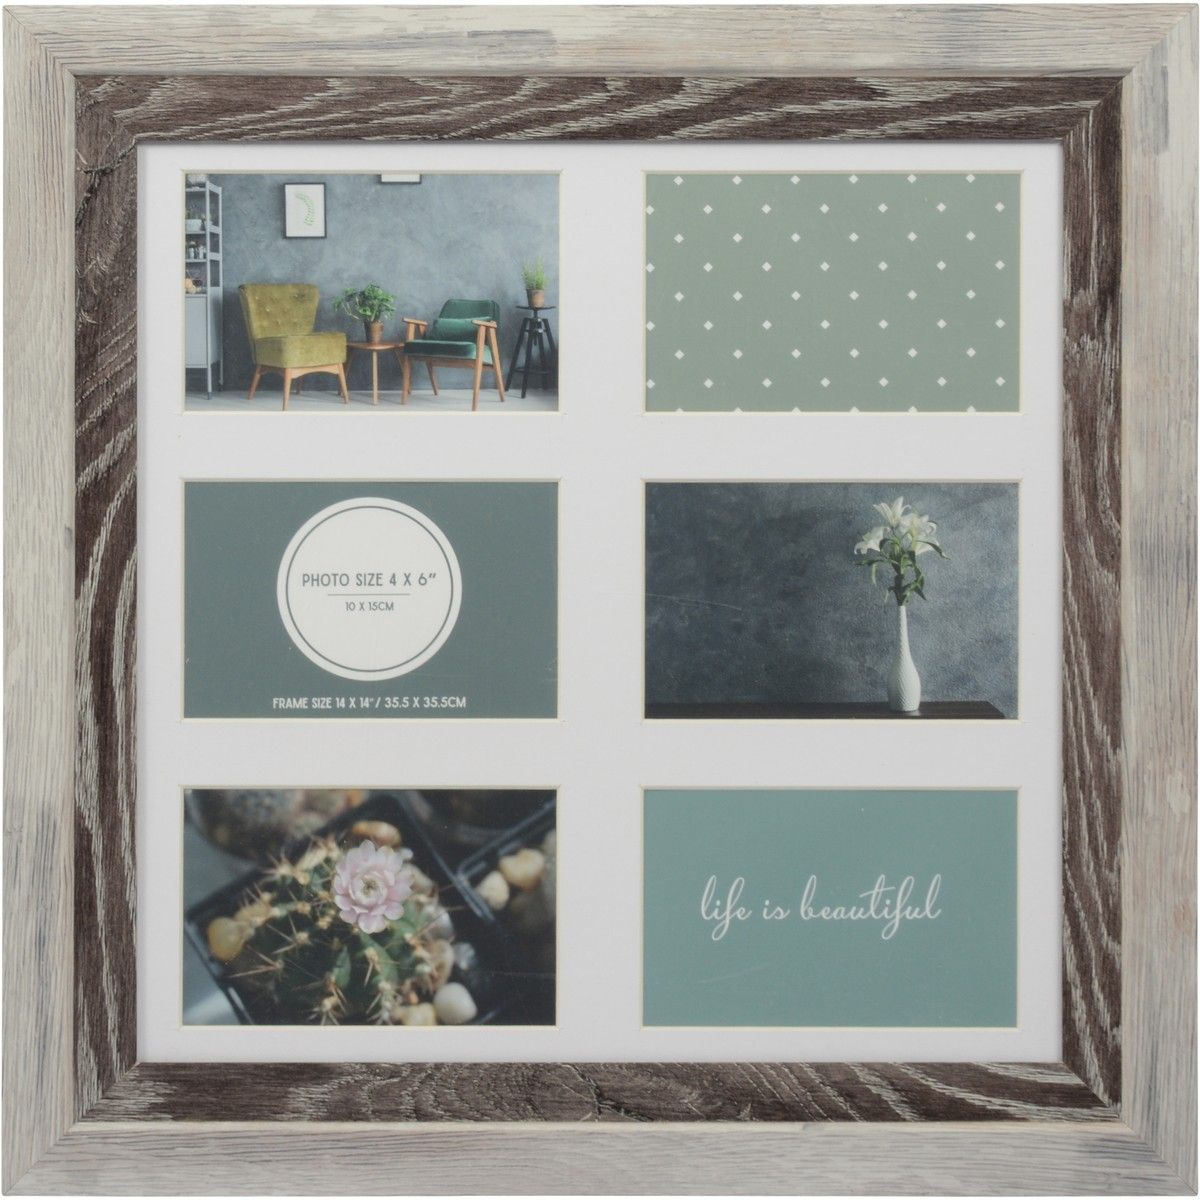 Design House 14 X 14 Inch M5 Photoframe Light Grey Dark Grey Big W Photo Frame Life Is Beatiful House Design